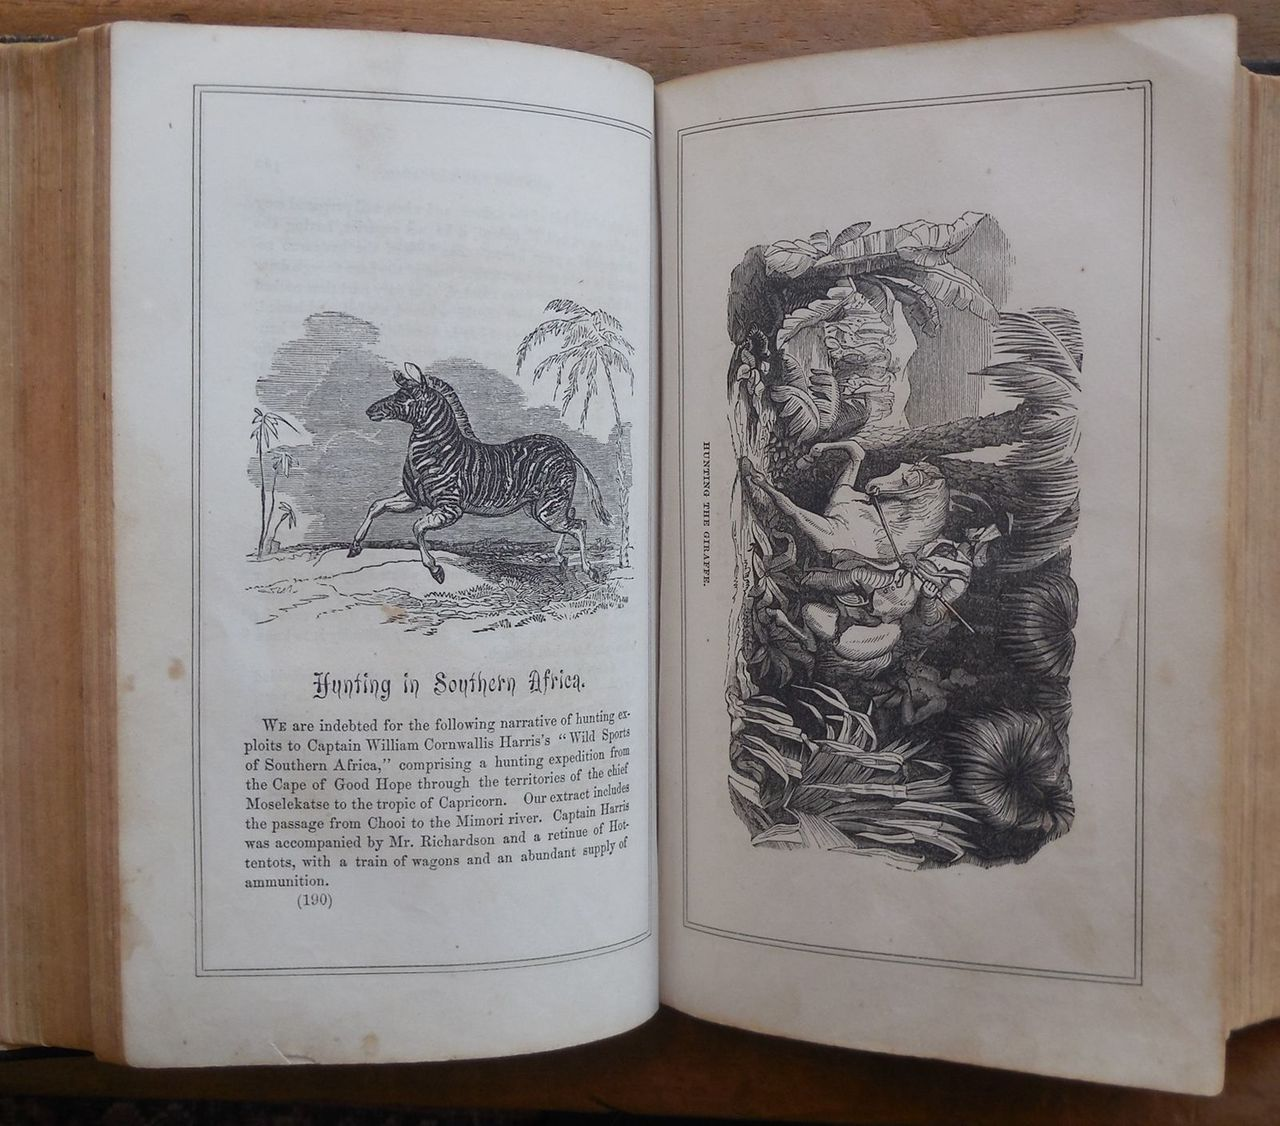 THRILLING ADVENTURES OF HUNTERS, IN THE OLD WORLD AND NEW, by Henry C. Watson - 1853